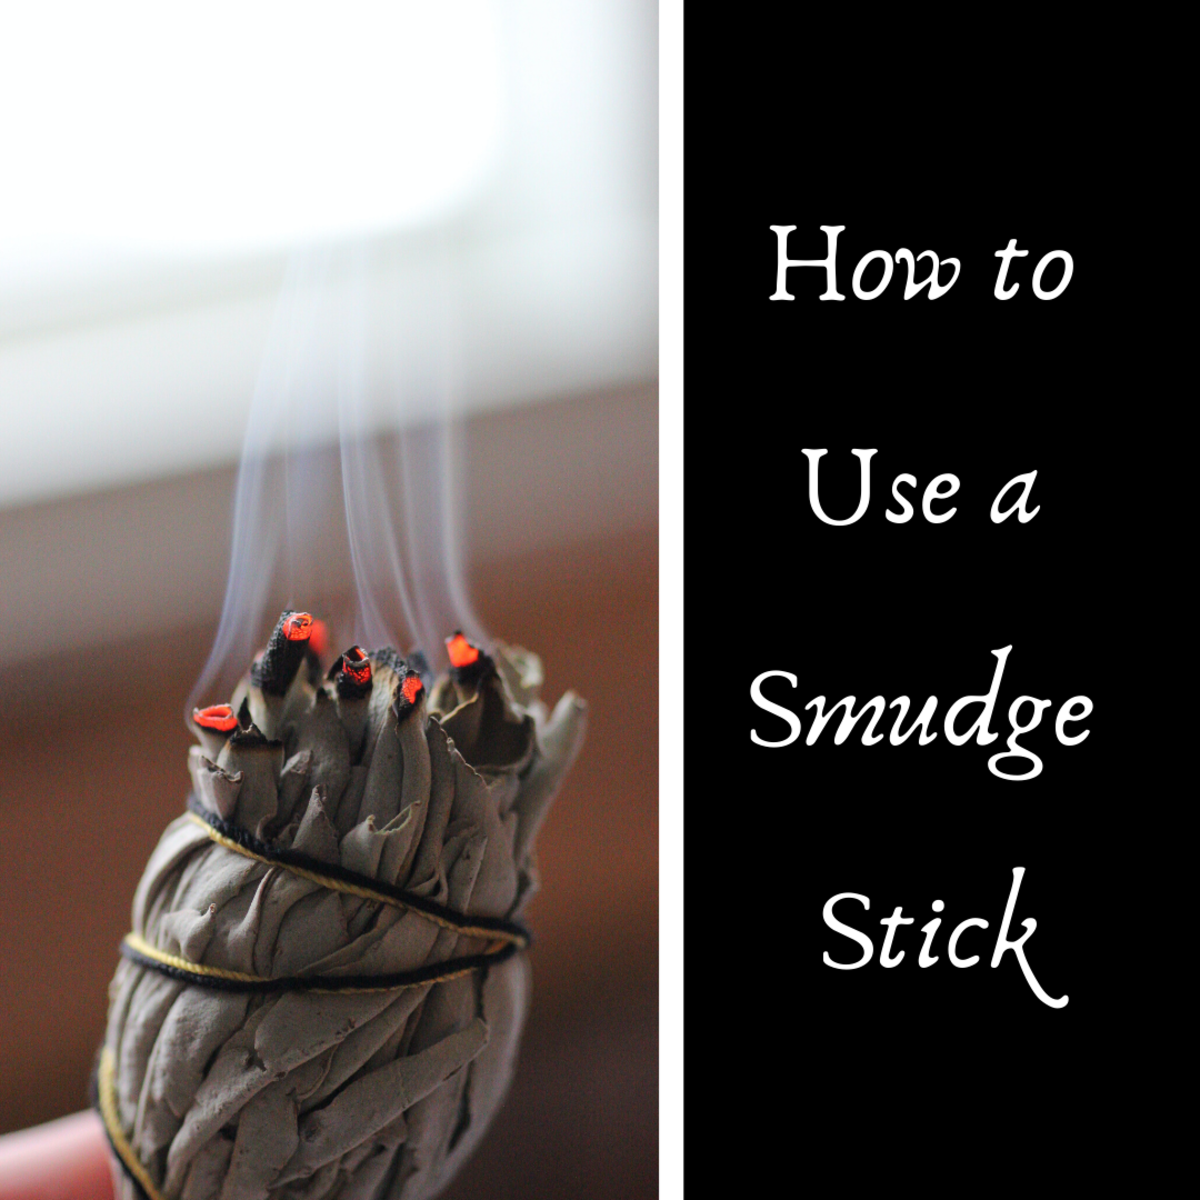 Read on to learn how to use a smudge stick.